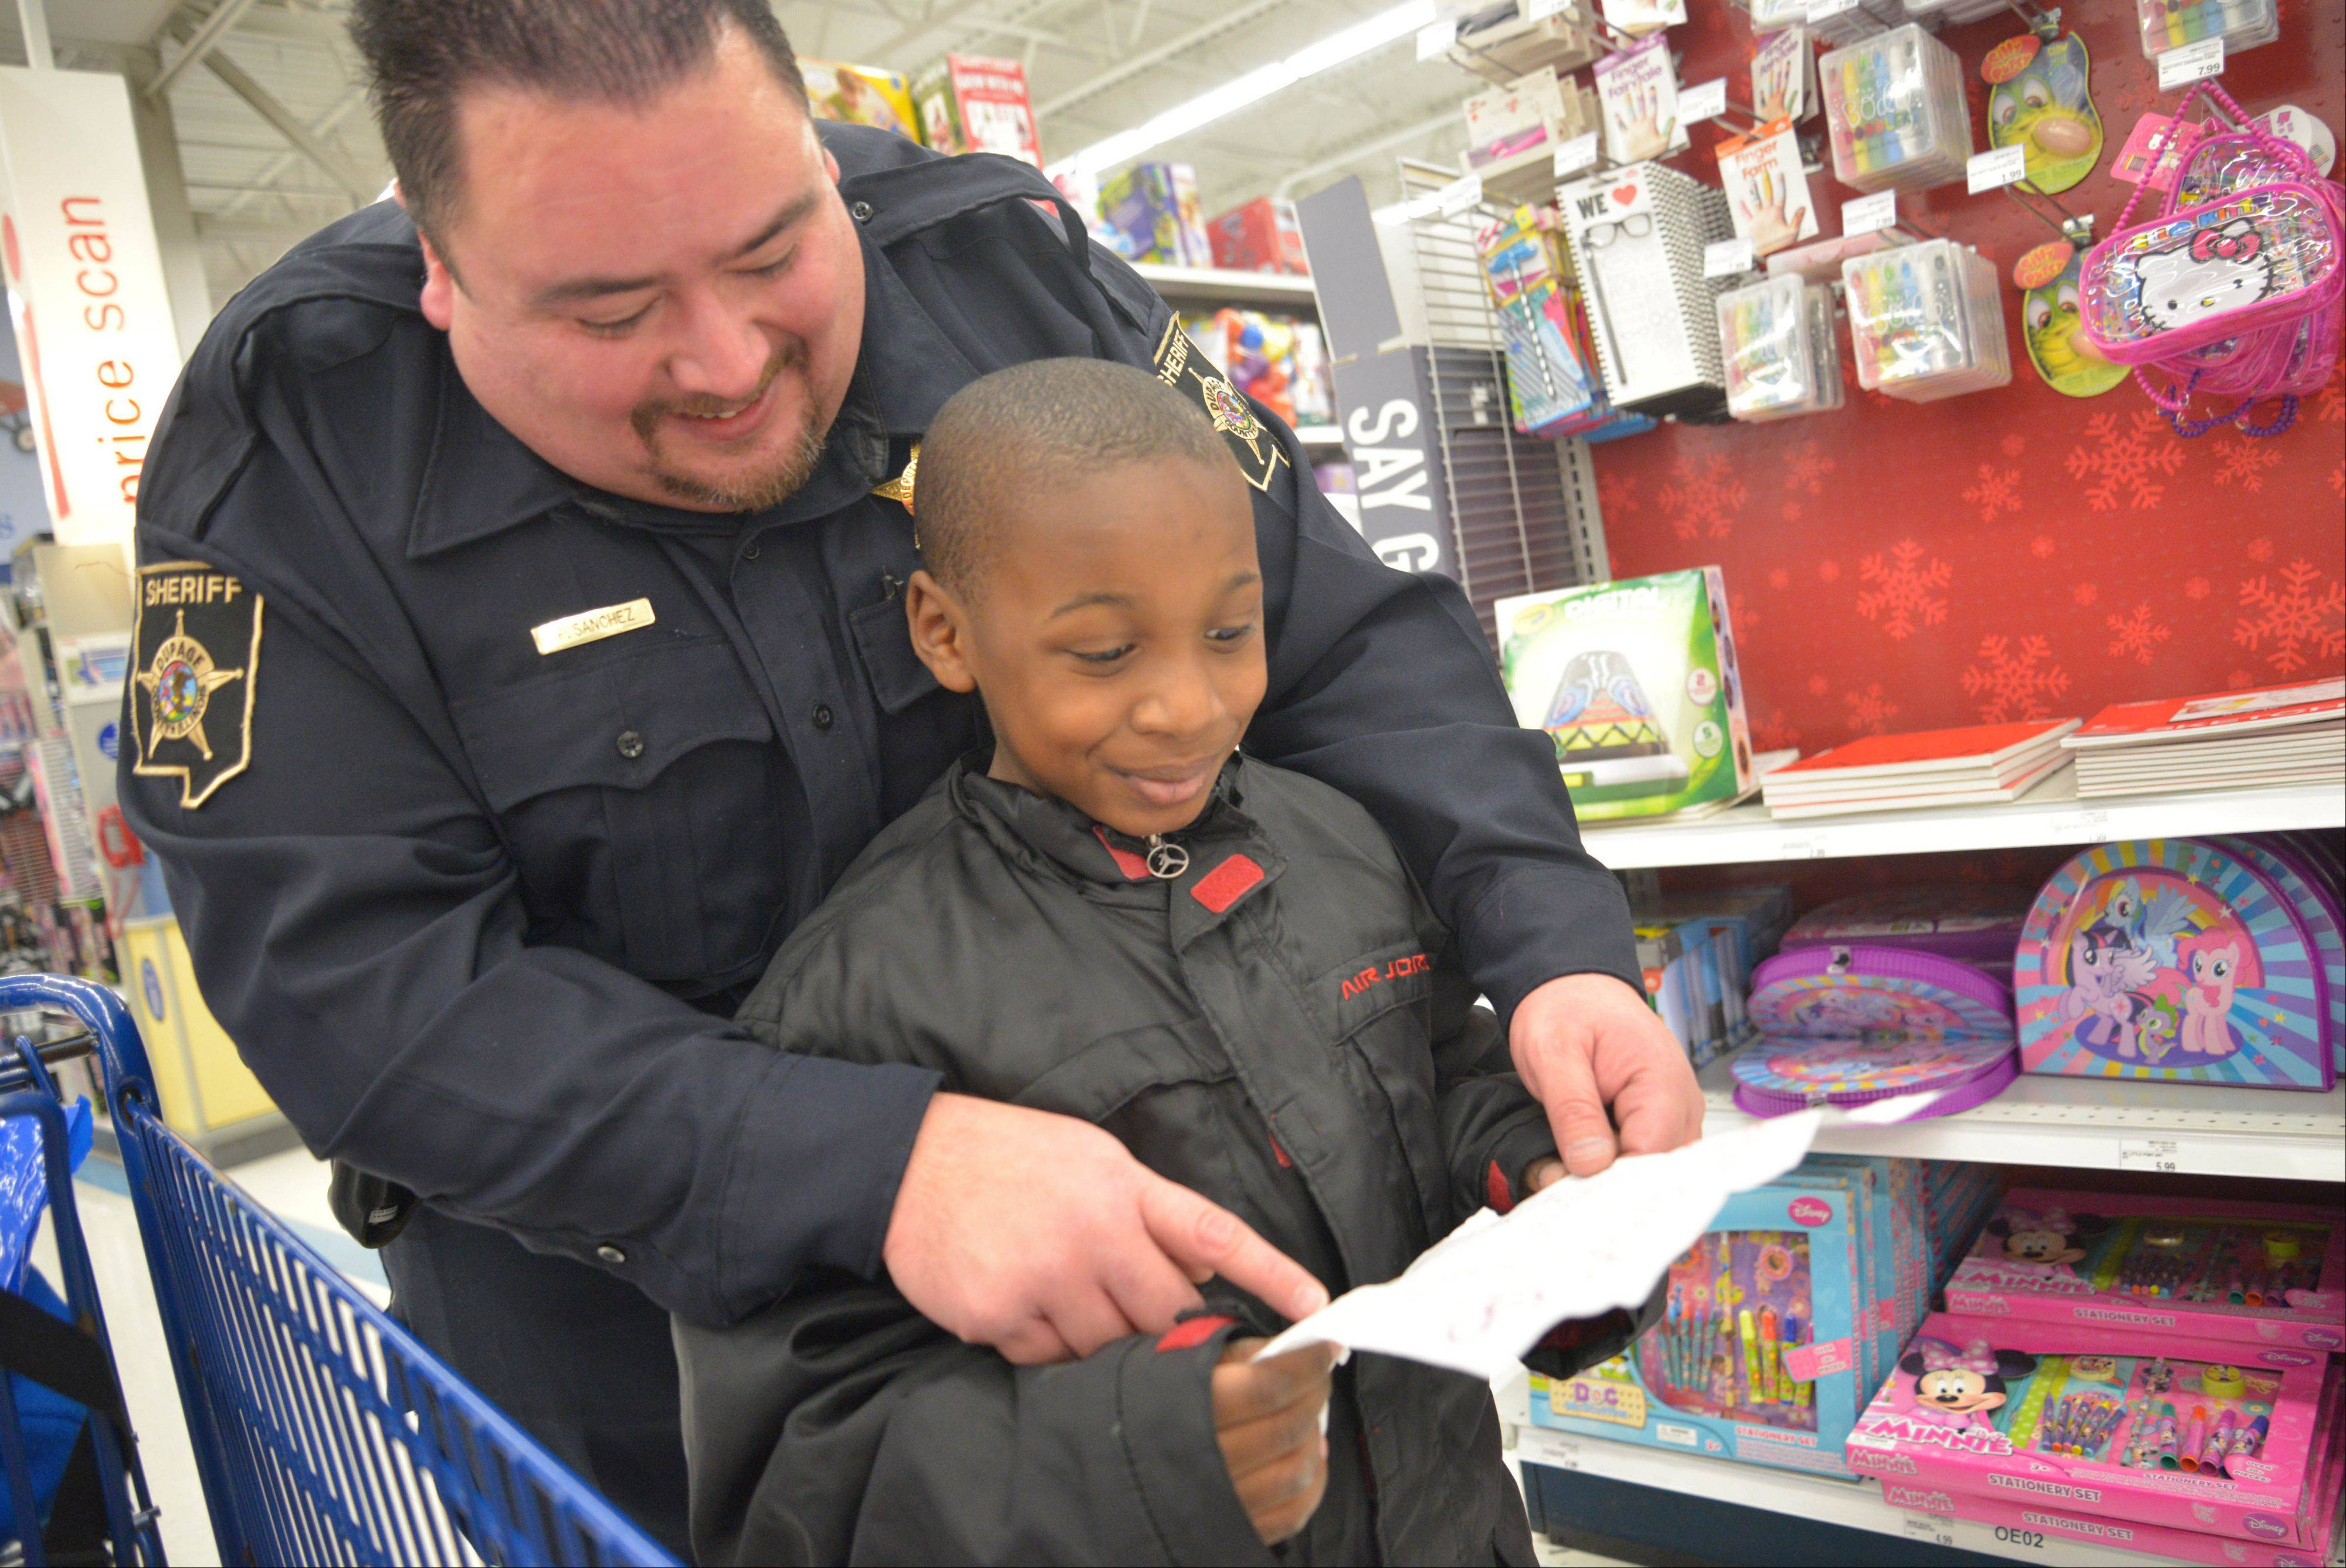 DuPage County sheriff�s Deputy Fernando Sanchez helps Kaleb Vaughn, 8, of Hanover Park check his shopping list Saturday at Meijer in Bloomingdale. DuPage�s sheriff�s office, an officers union, chiefs of police association and departments from at least nine towns combined to brighten the holidays for 70 children.